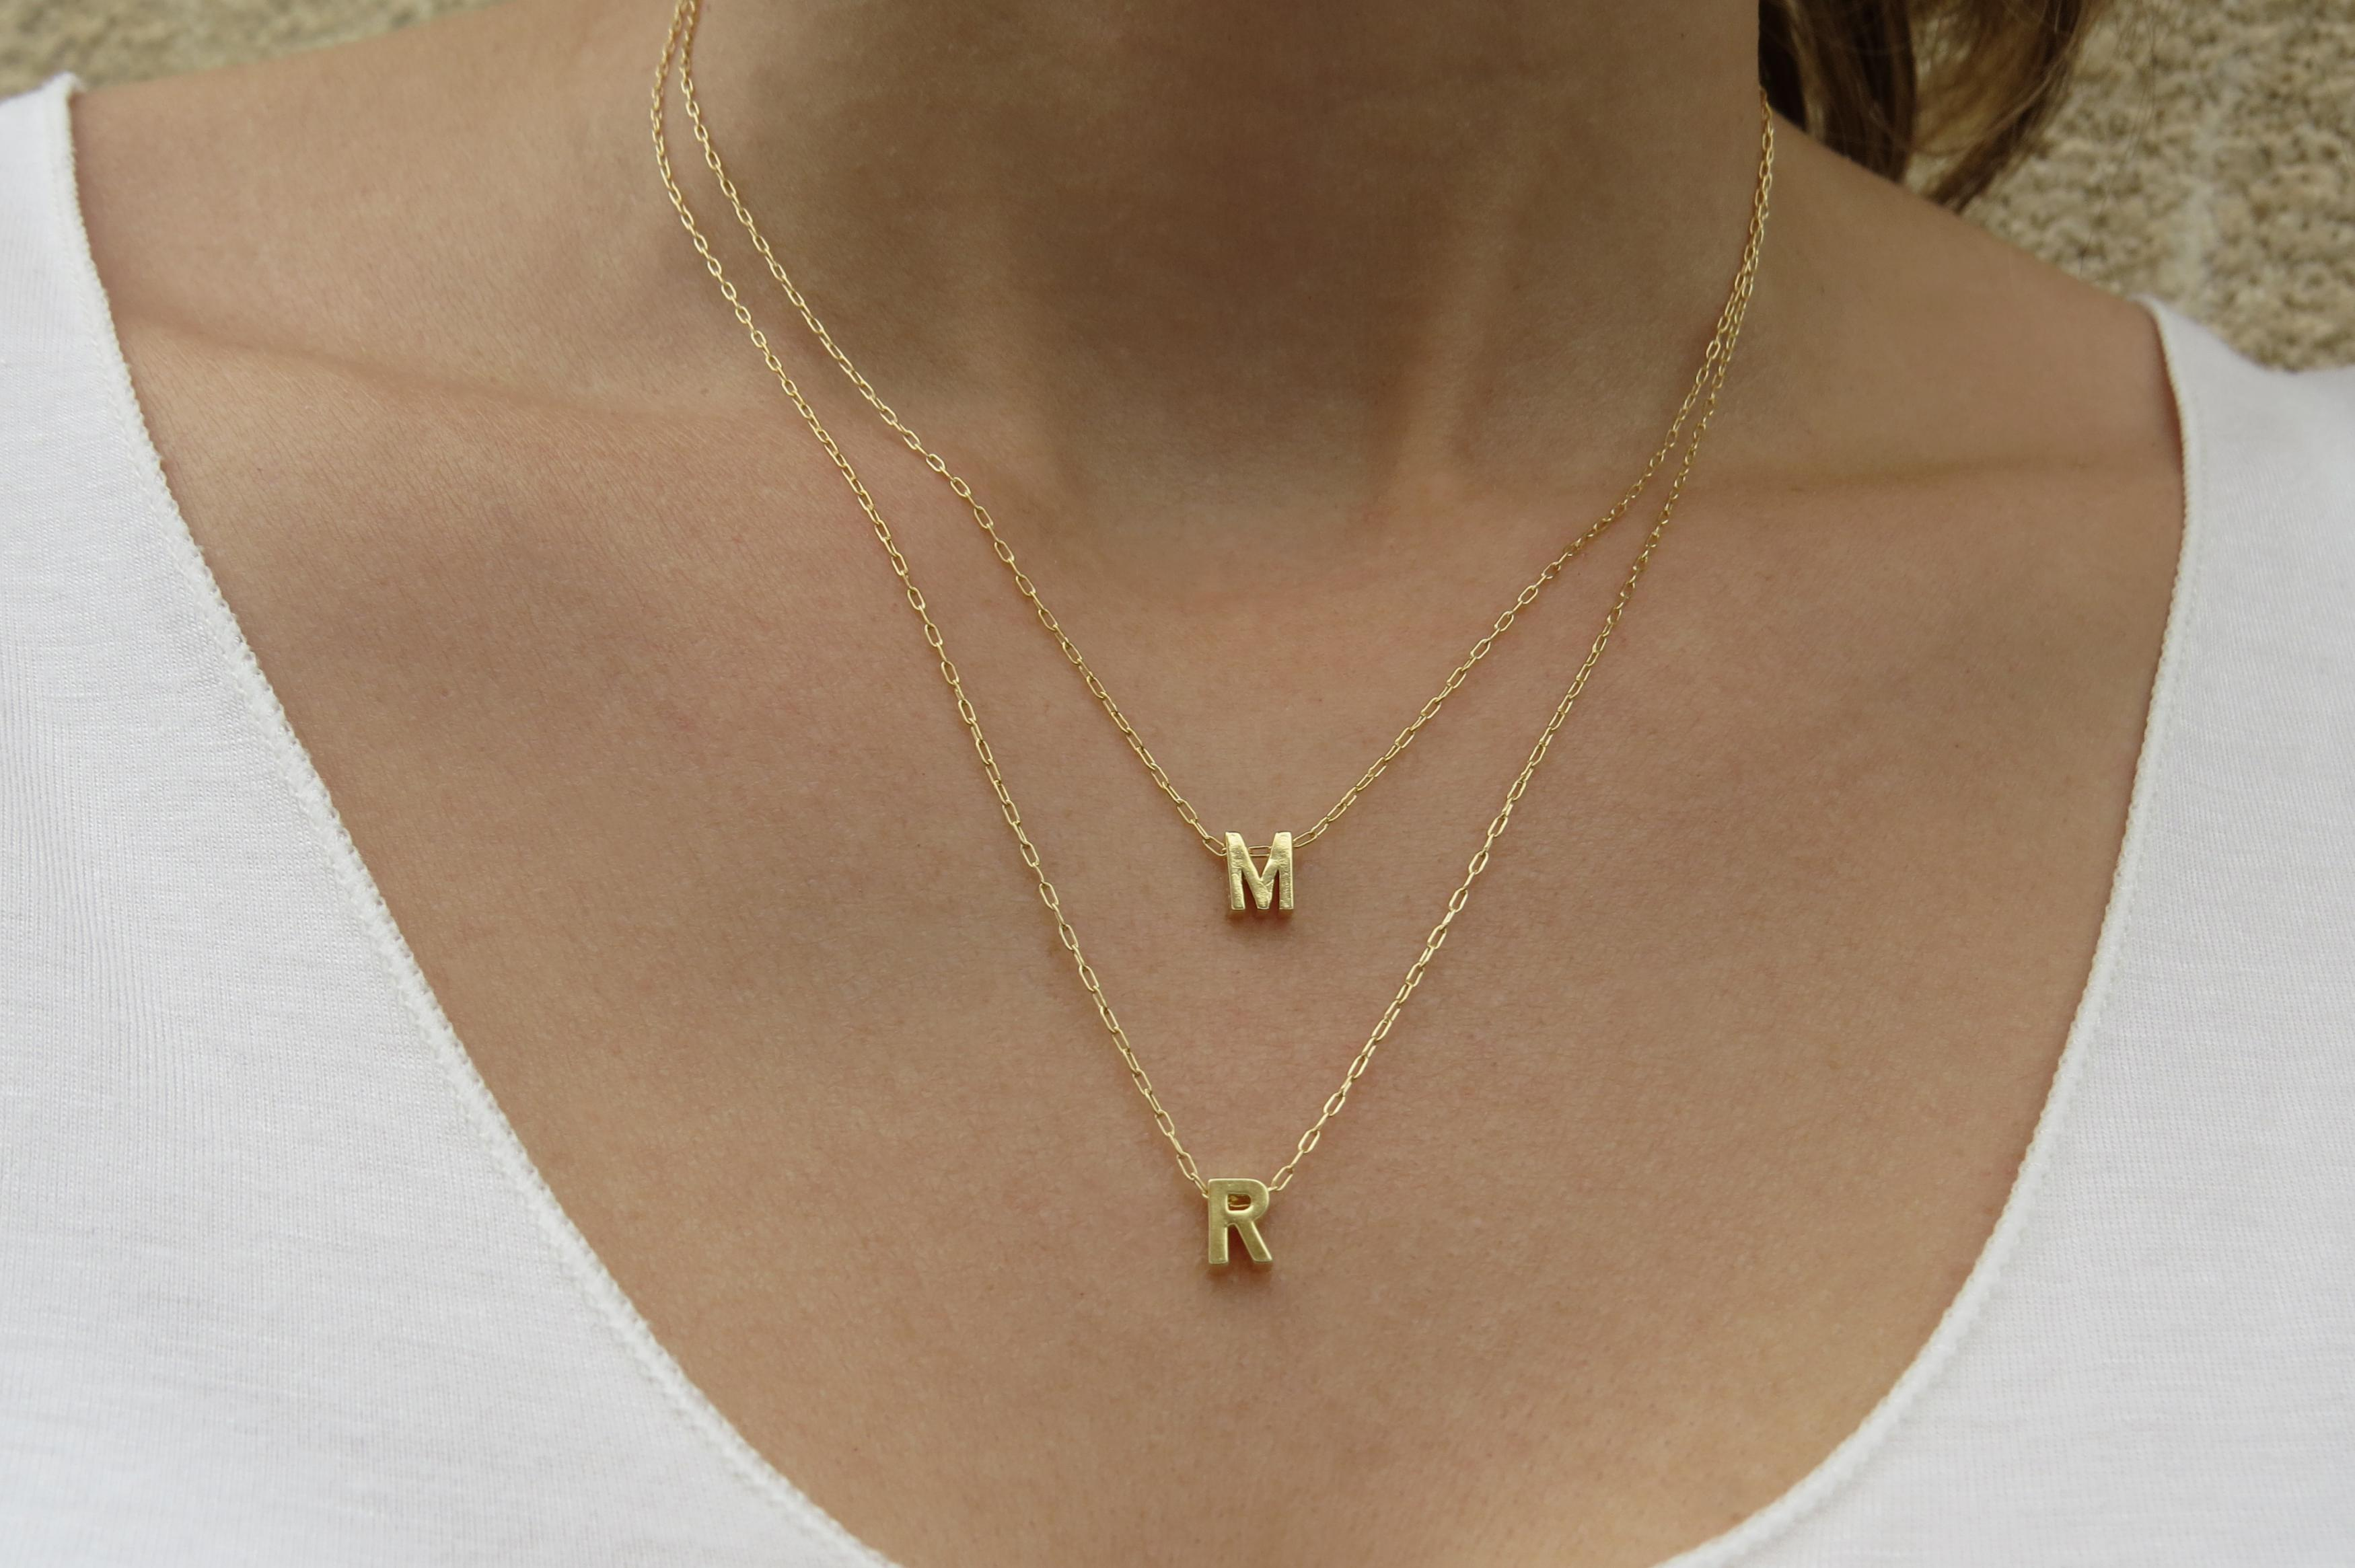 Goldfilled initial necklace gold letter necklace gold necklace goldfilled initial necklace gold letter necklace gold necklace bridesmaid gift layers necklace personalized necklace initial jewelry mozeypictures Images